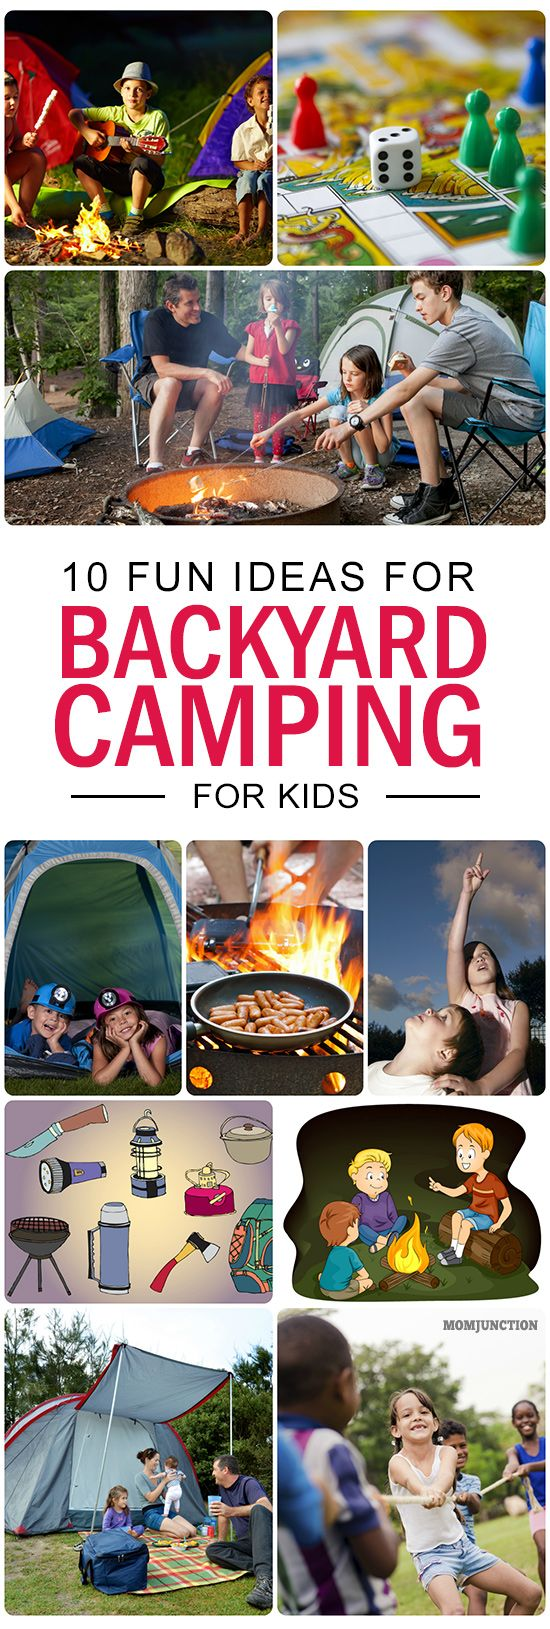 25 best ideas about In the backyard on Pinterest Backyards